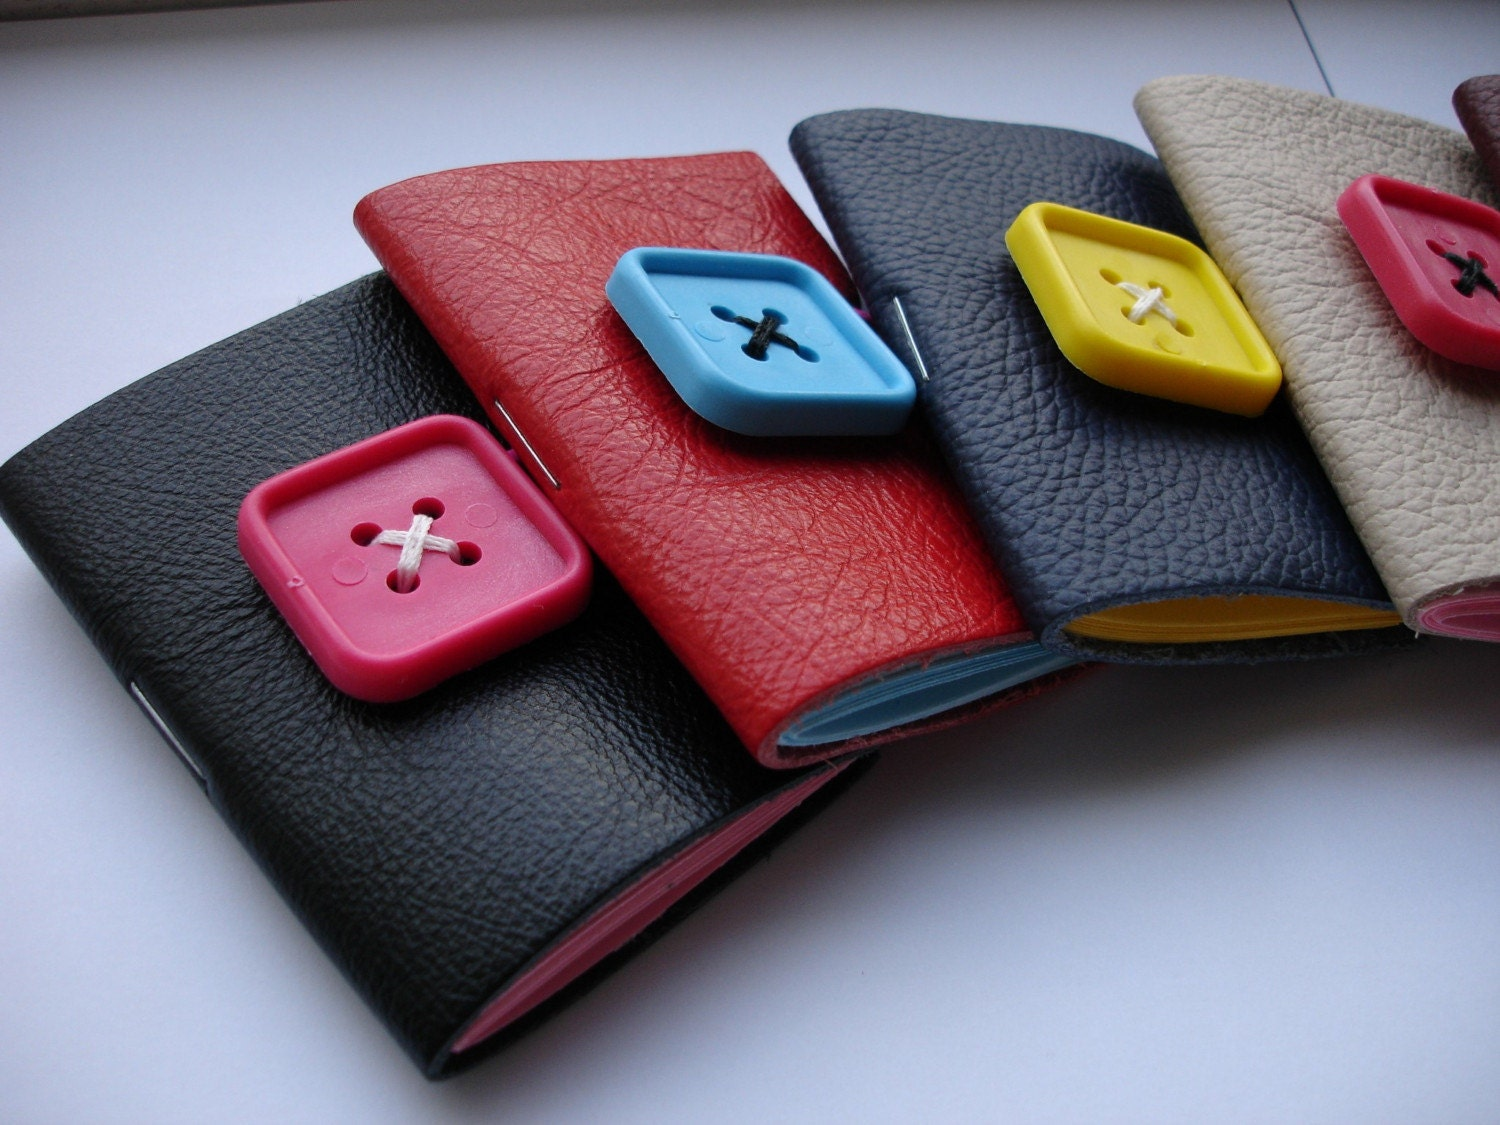 LOVE JOURNALS - Small Leather Notebook Journals with Square Buttons - 7 Colours Available - Gift Idea - MADE TO ORDER